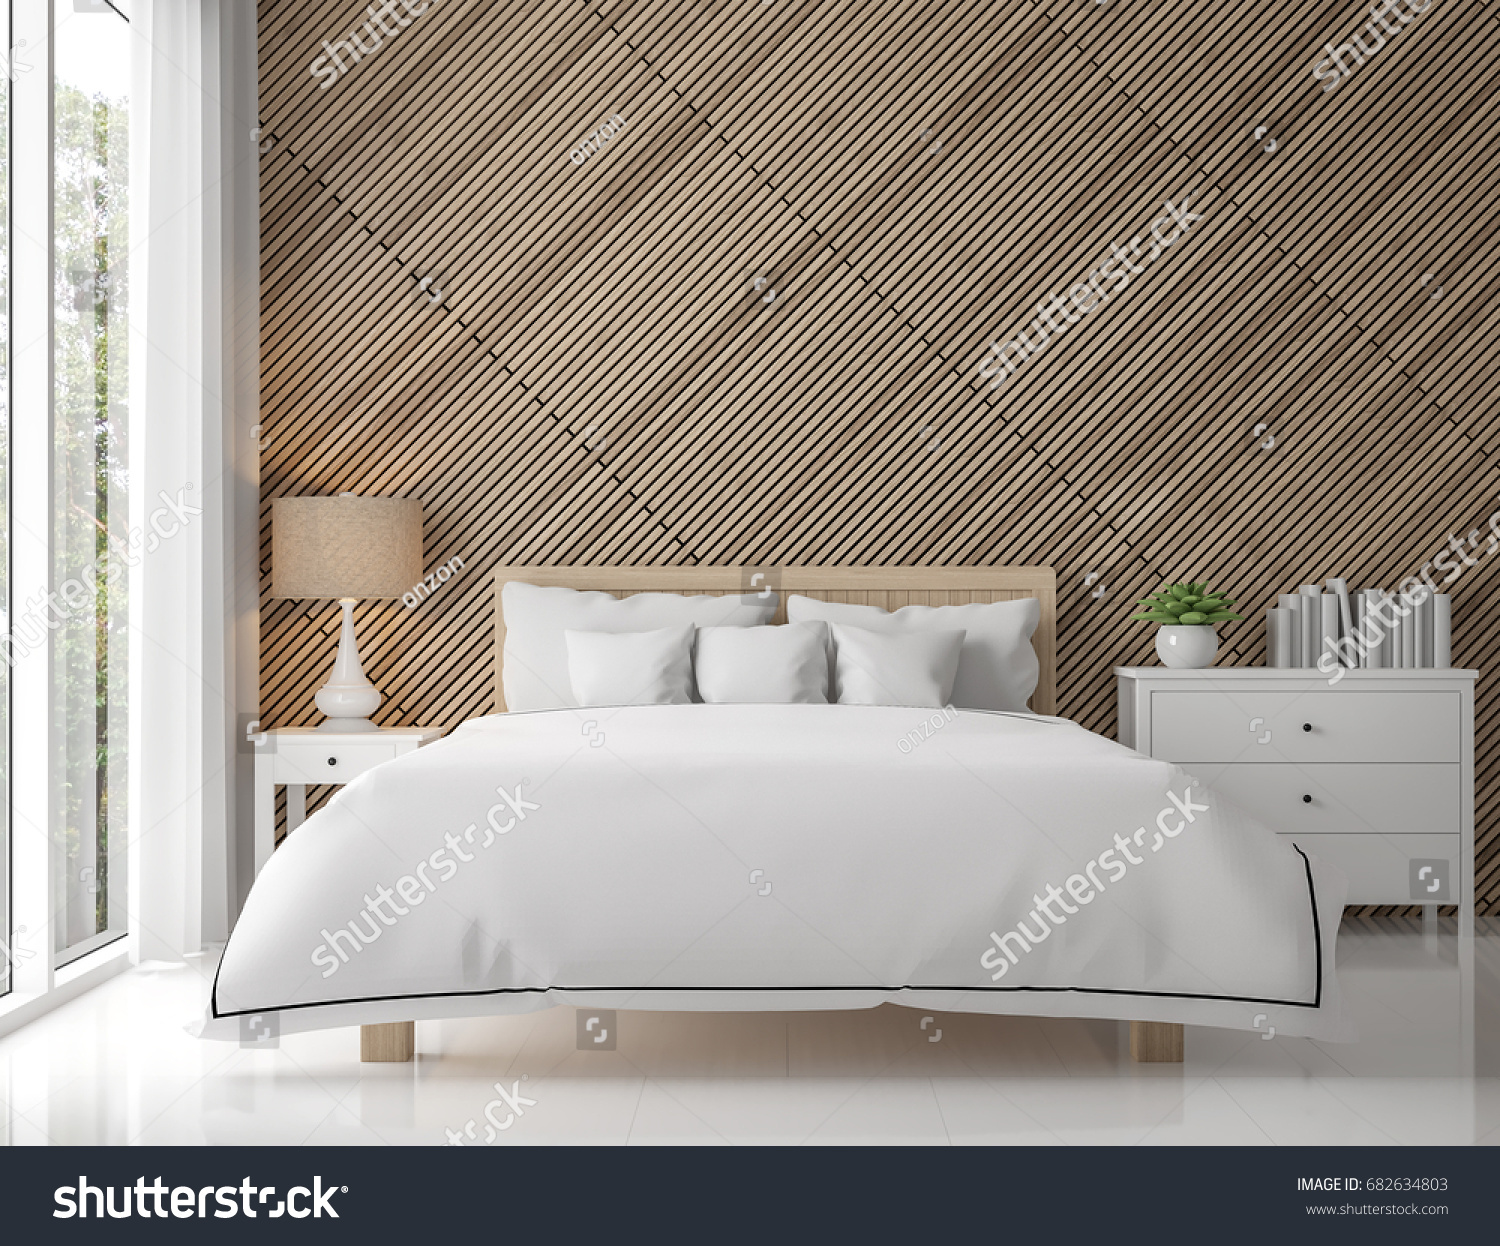 modern contemporary bedroom interior with wood lattice 3d rendering imagethere are white floor decorate - White Floor Bedroom